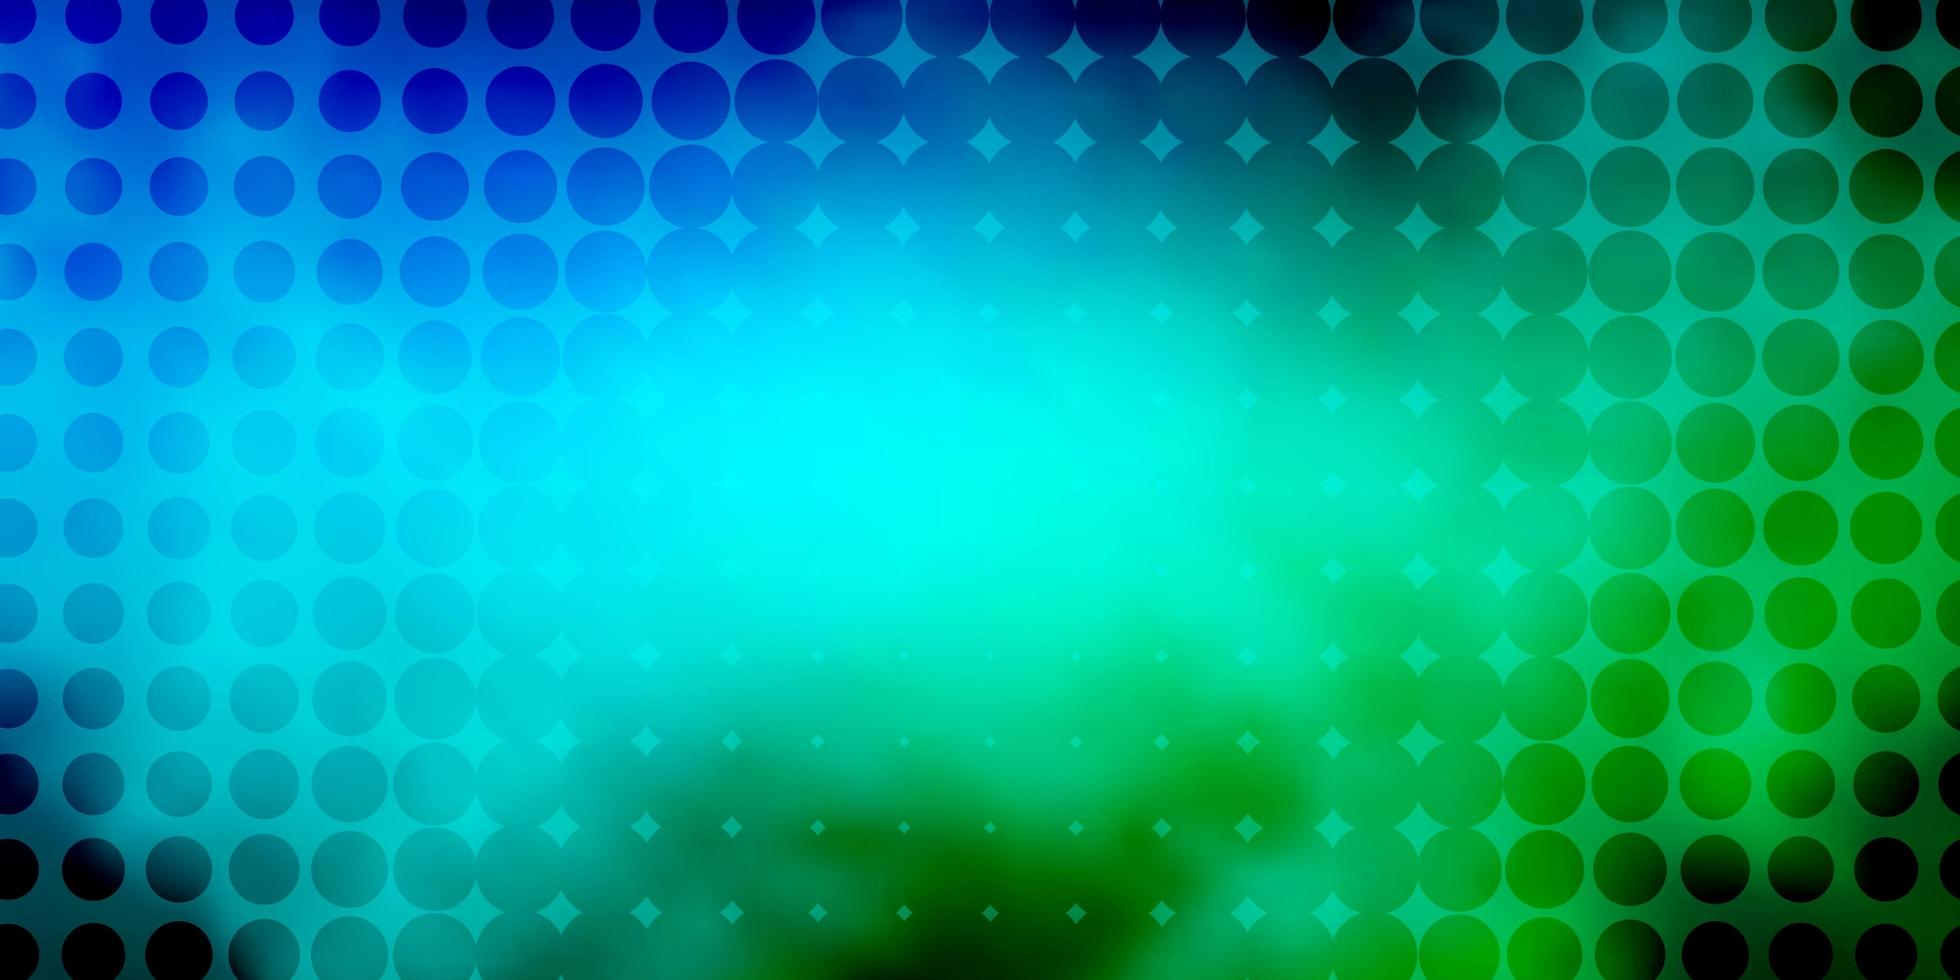 Blue and green background with circles. vector